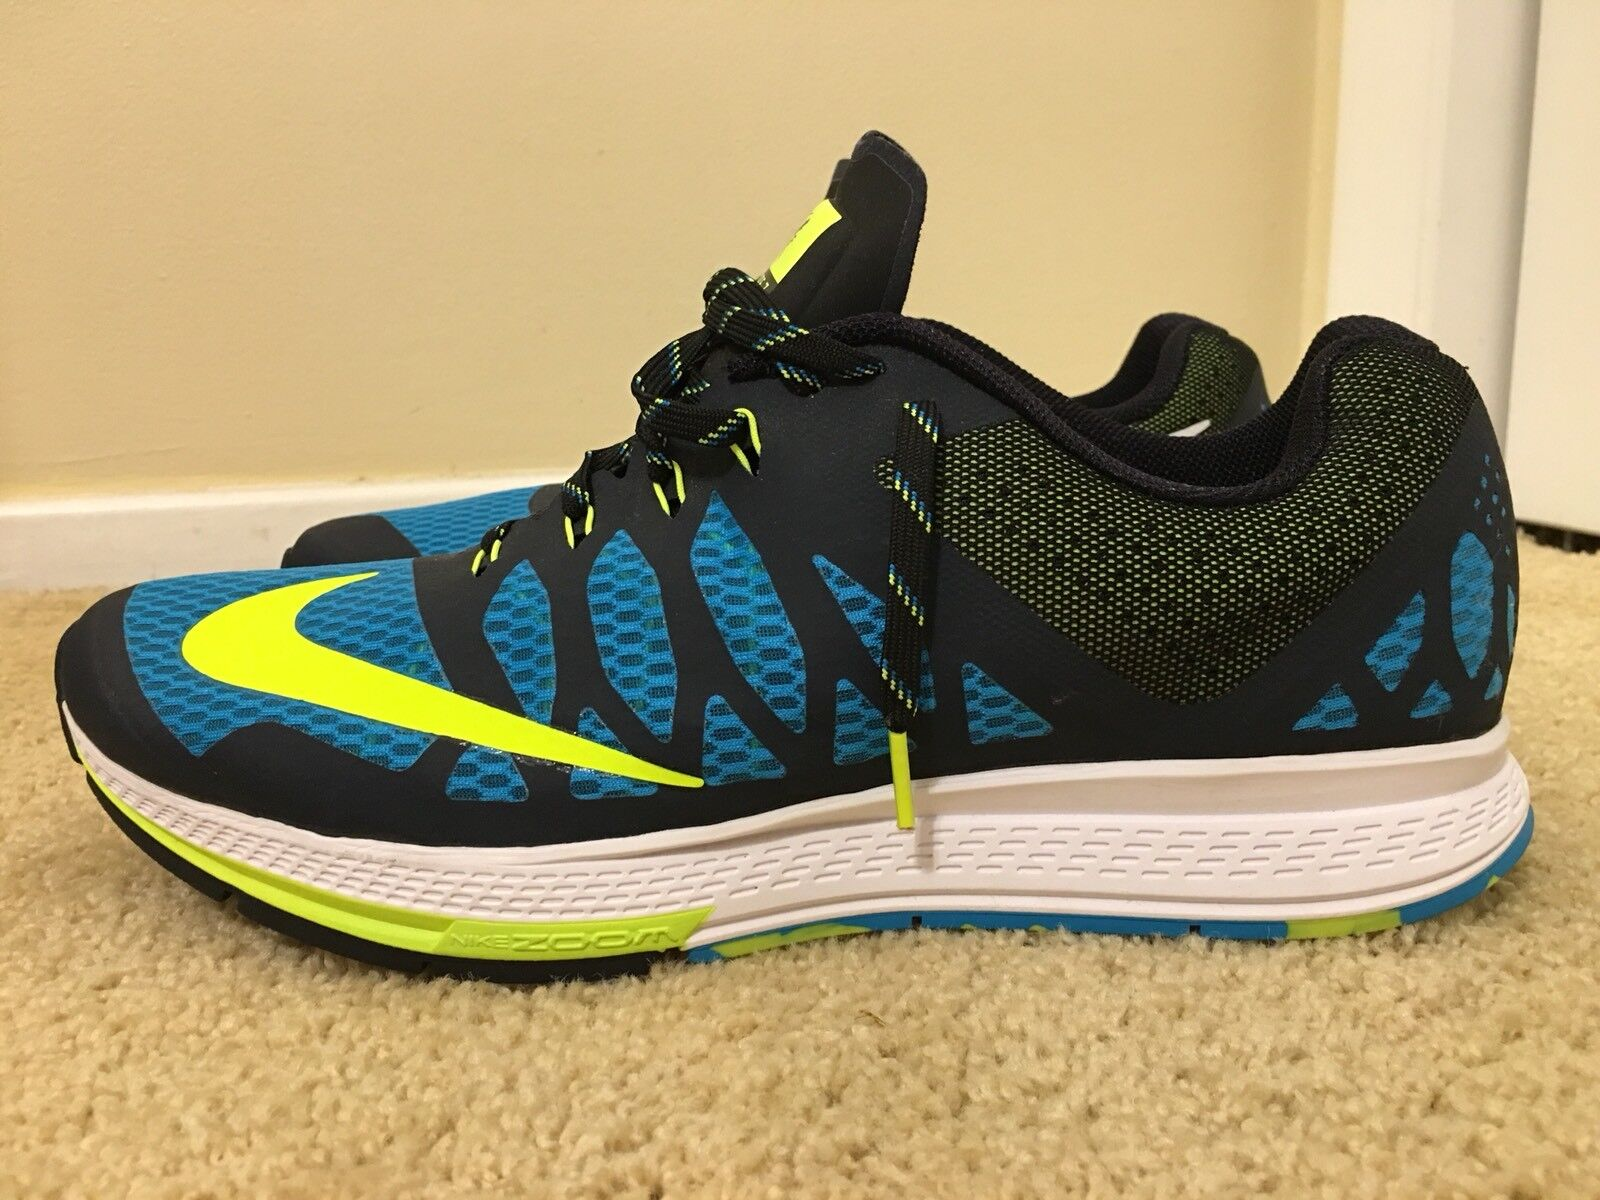 NIKE AIR ZOOM ELITE 7, 654443-404, Black bluee, Men's Running shoes, Size 12.5